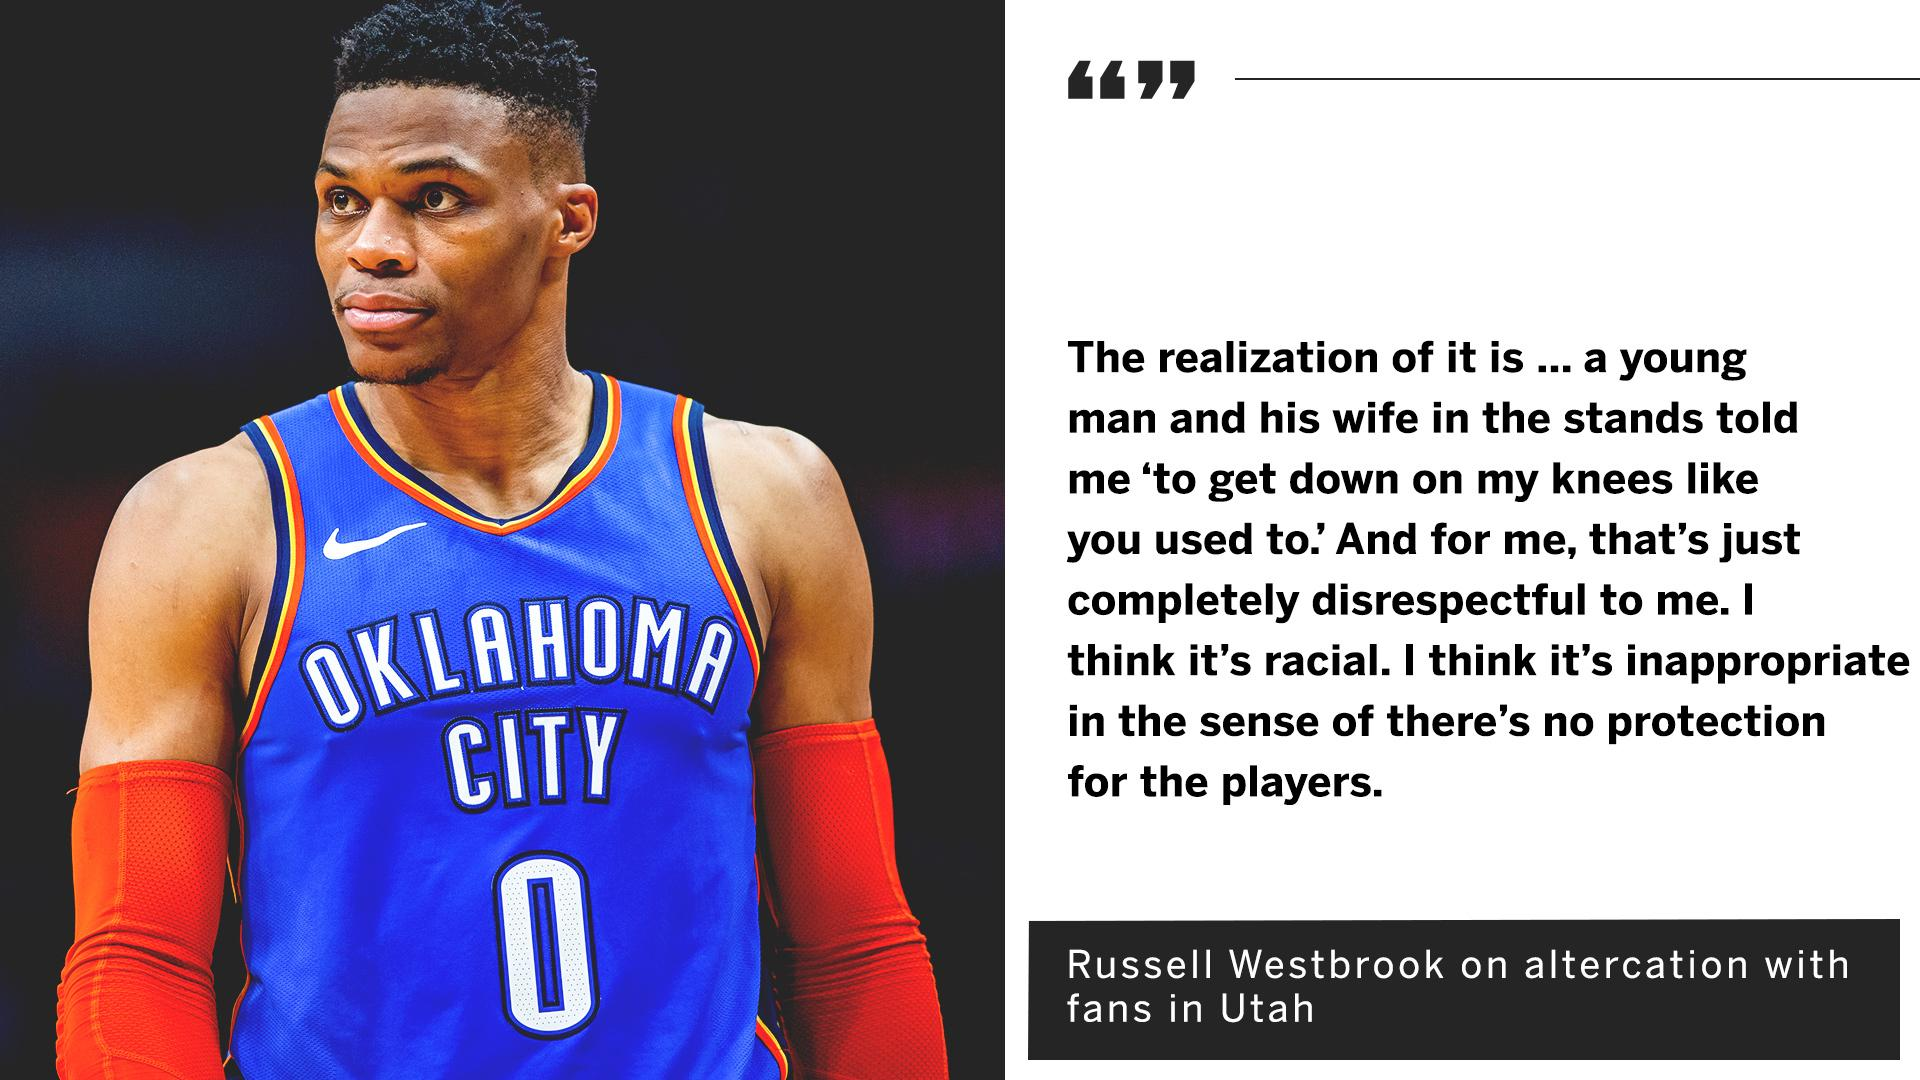 Russell Westbrook shared his side of the story. https://t.co/9HQEn4mQEz